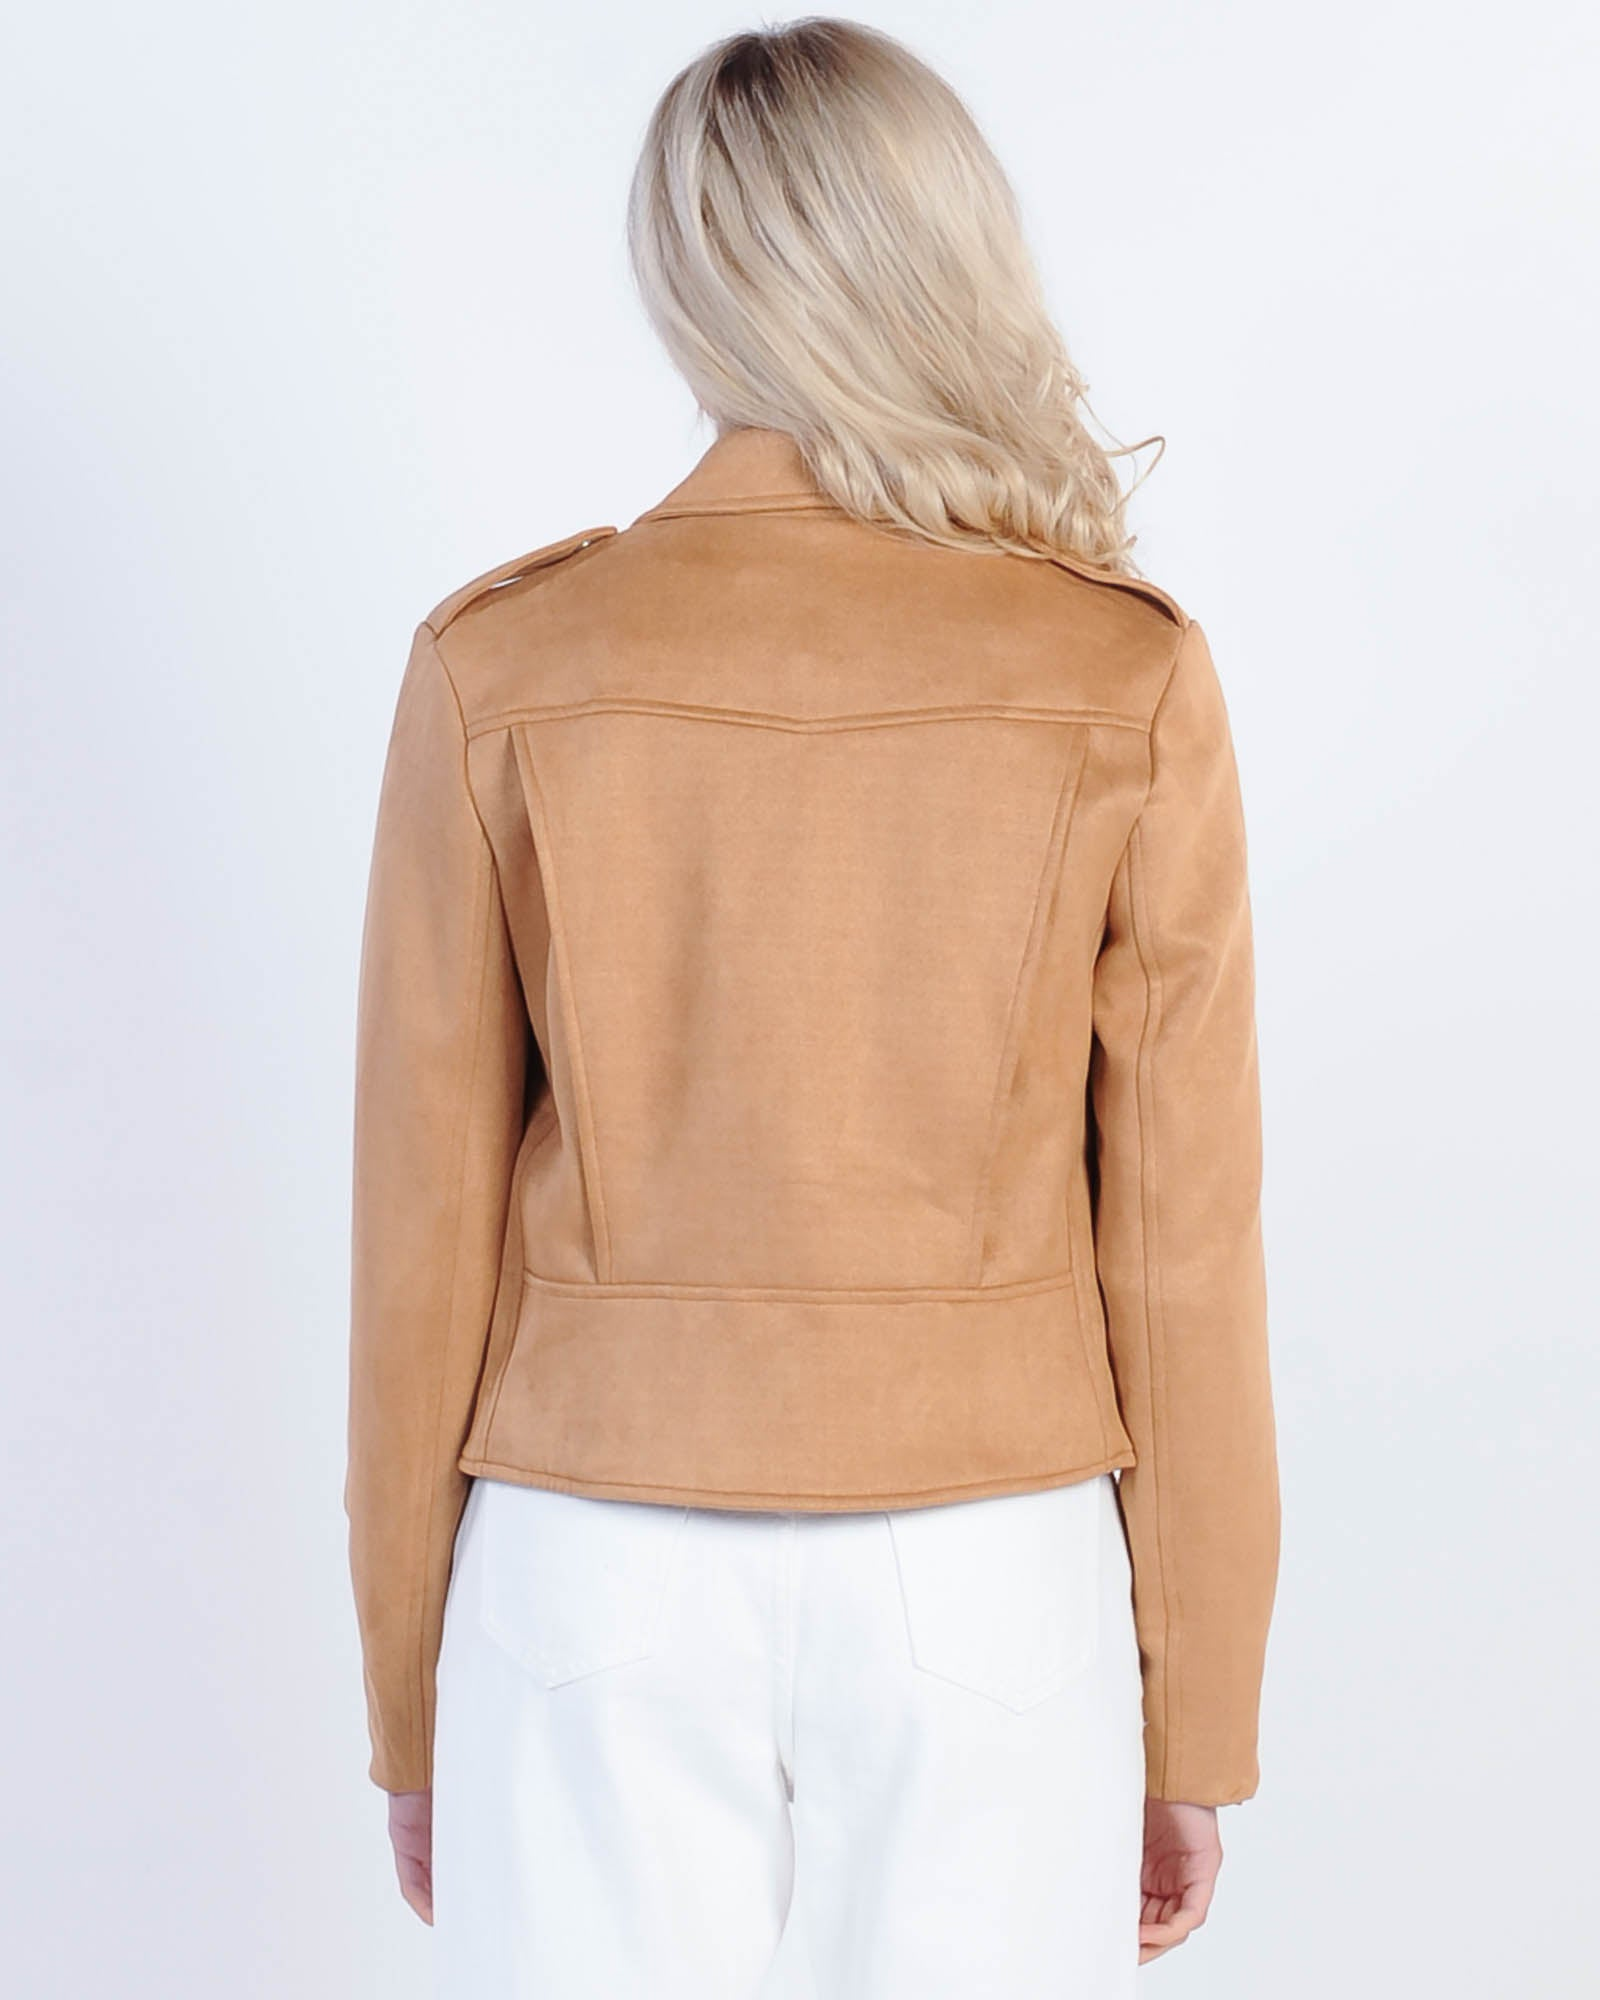 Madison The Label Ace Jacket - Camel